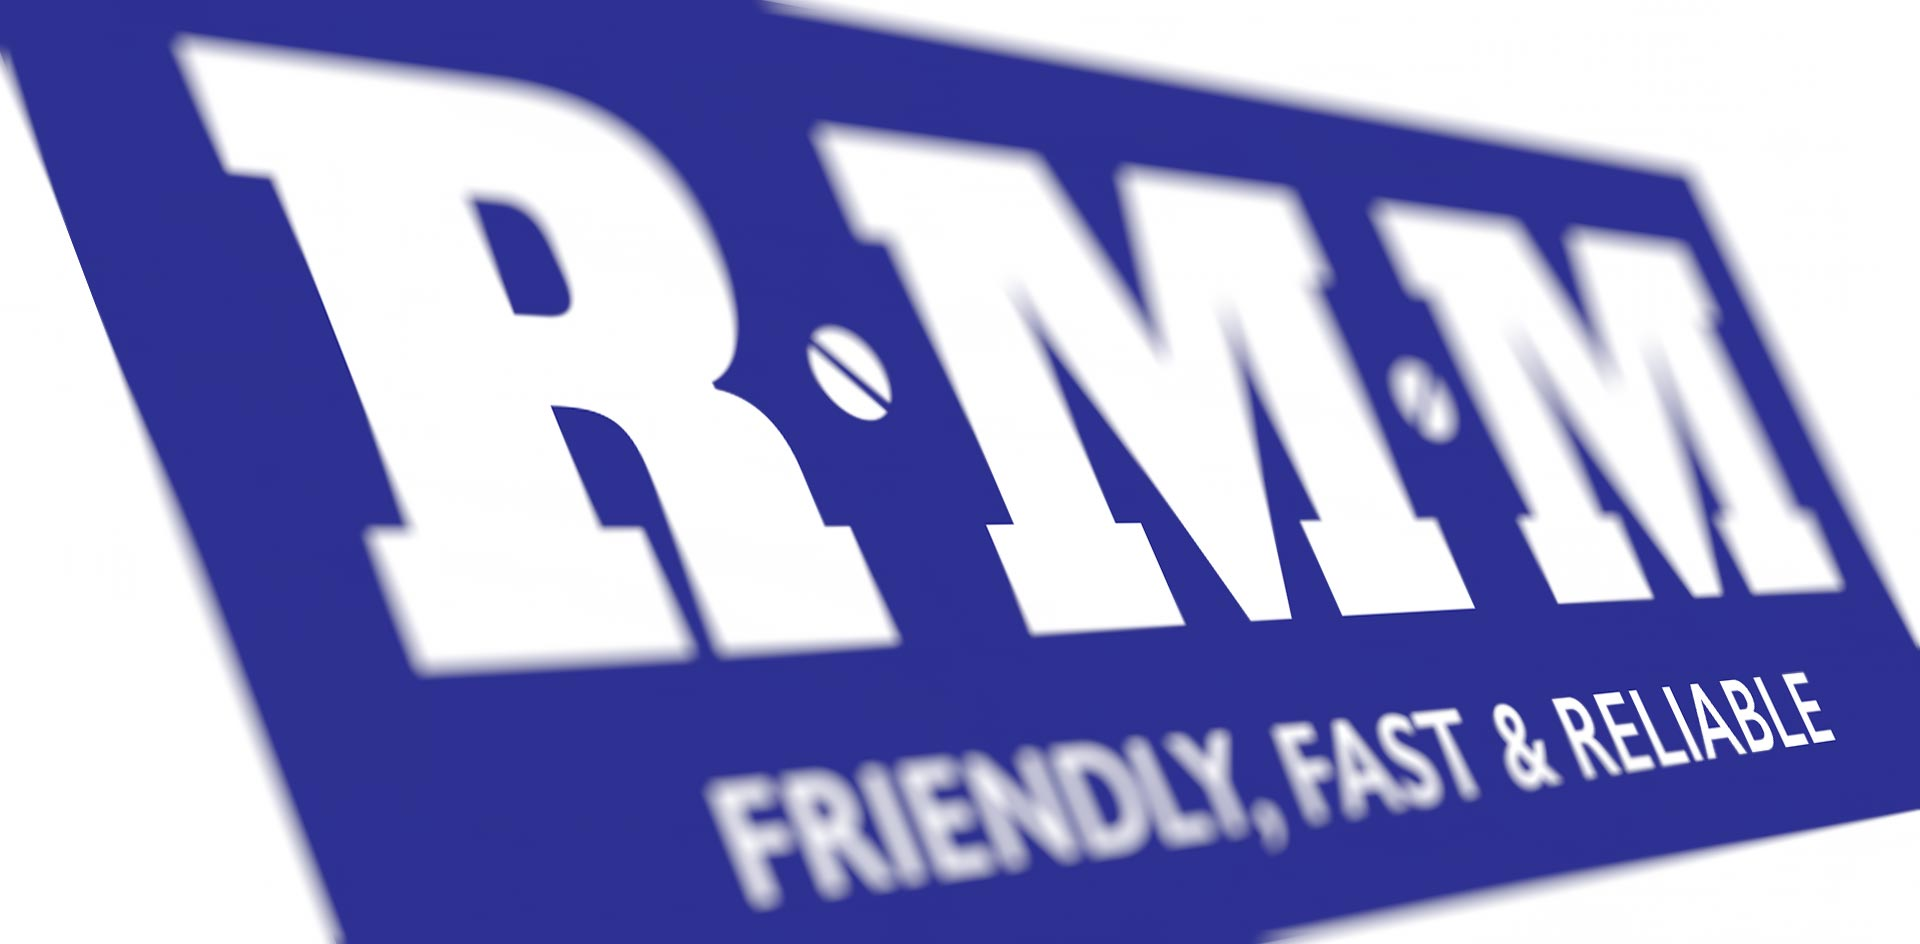 RMM Building supplies logo design by Black Rooster Studios.